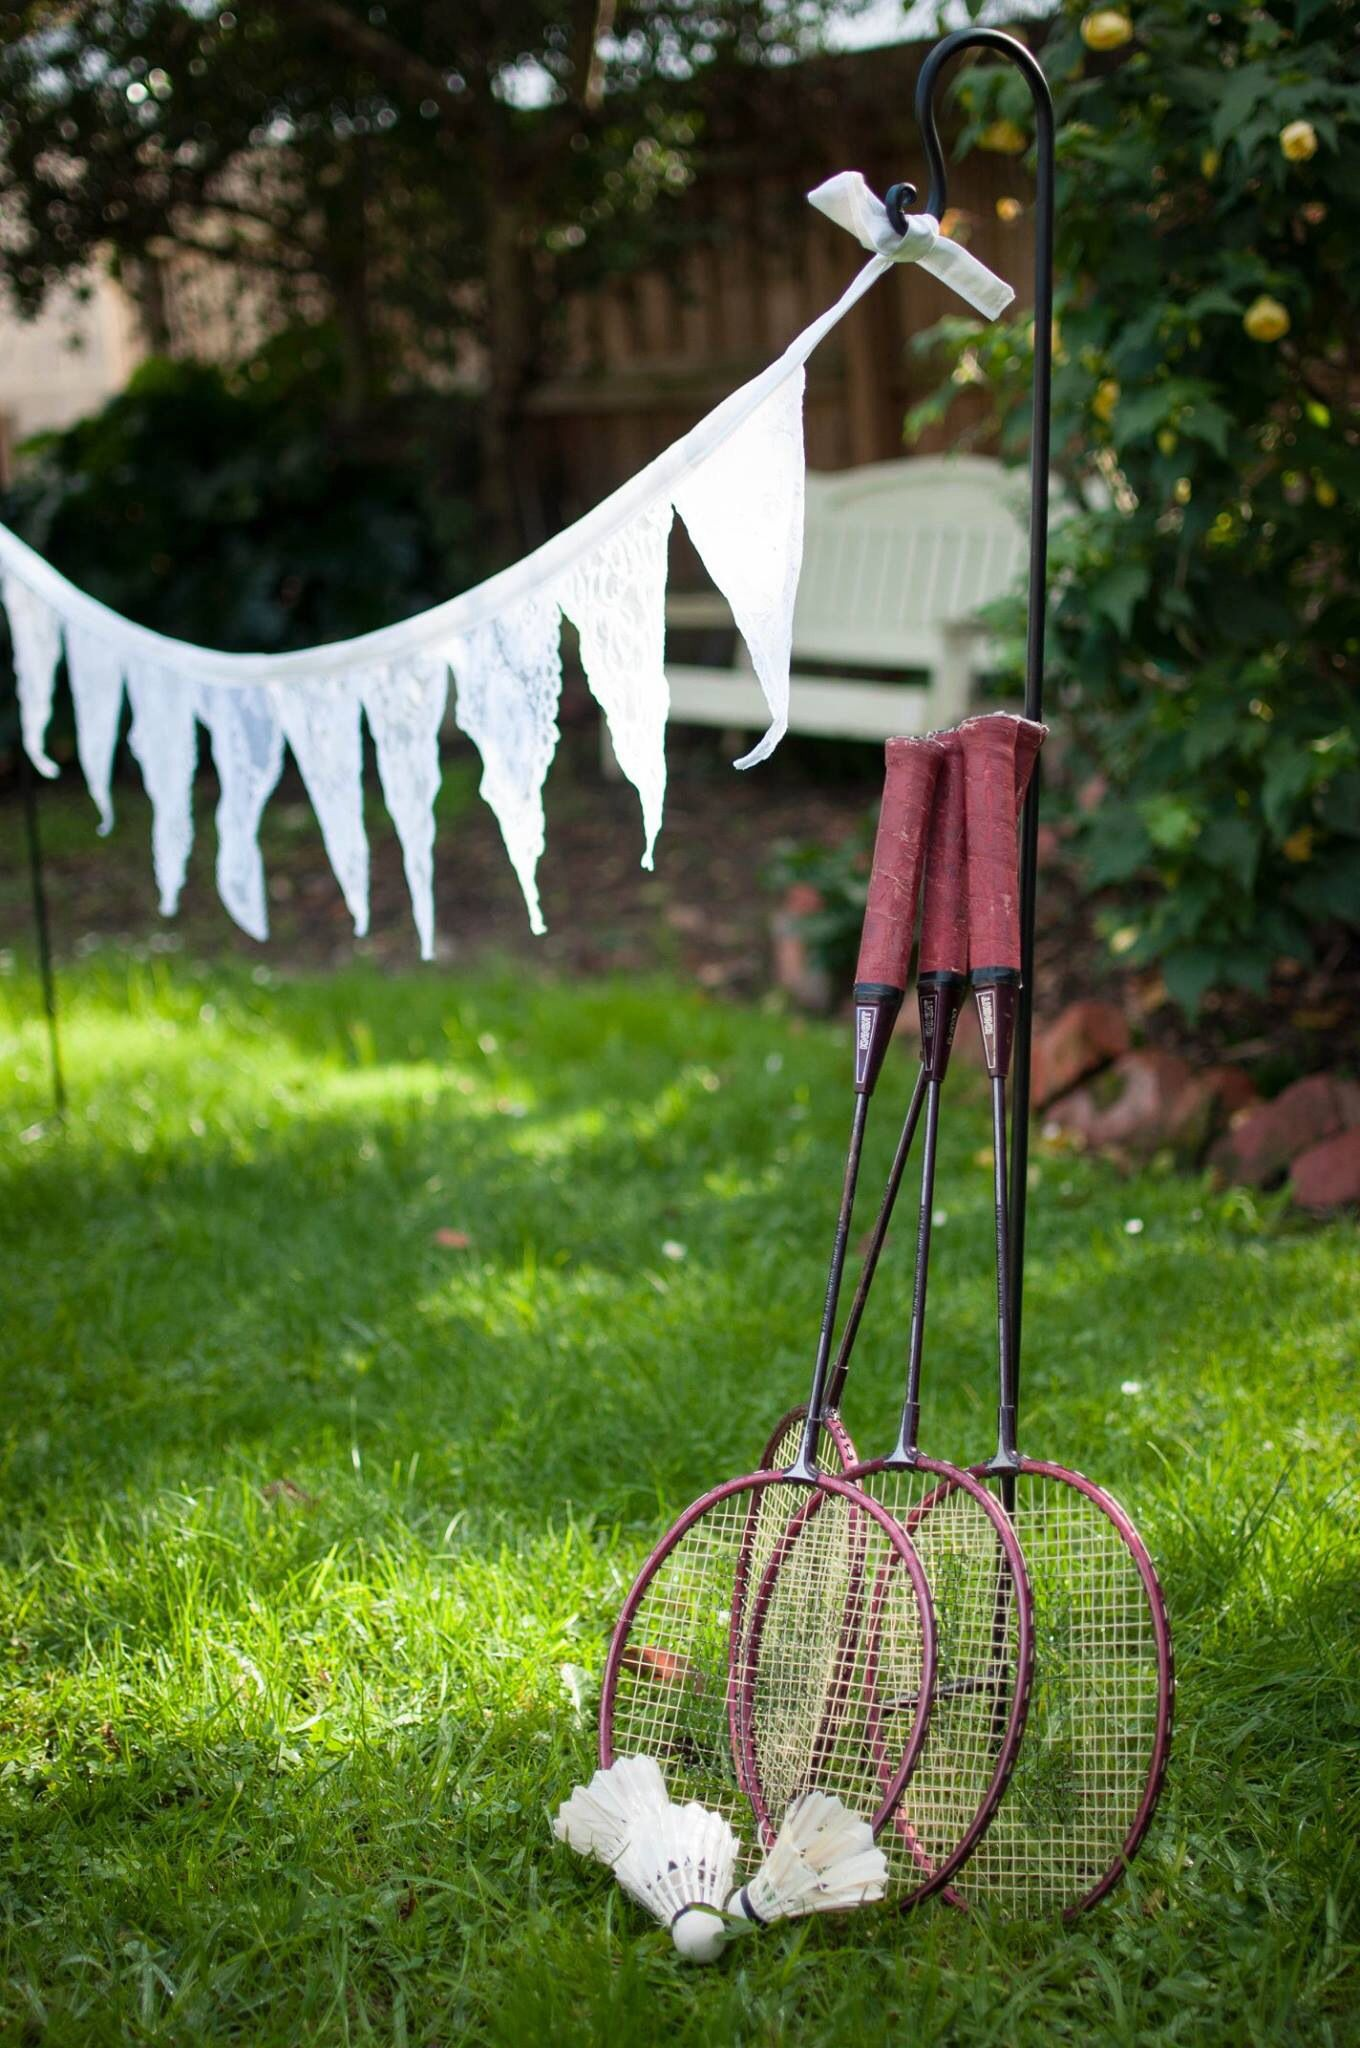 Badminton Weddingbirthdayscorporate partieslawn games for hire